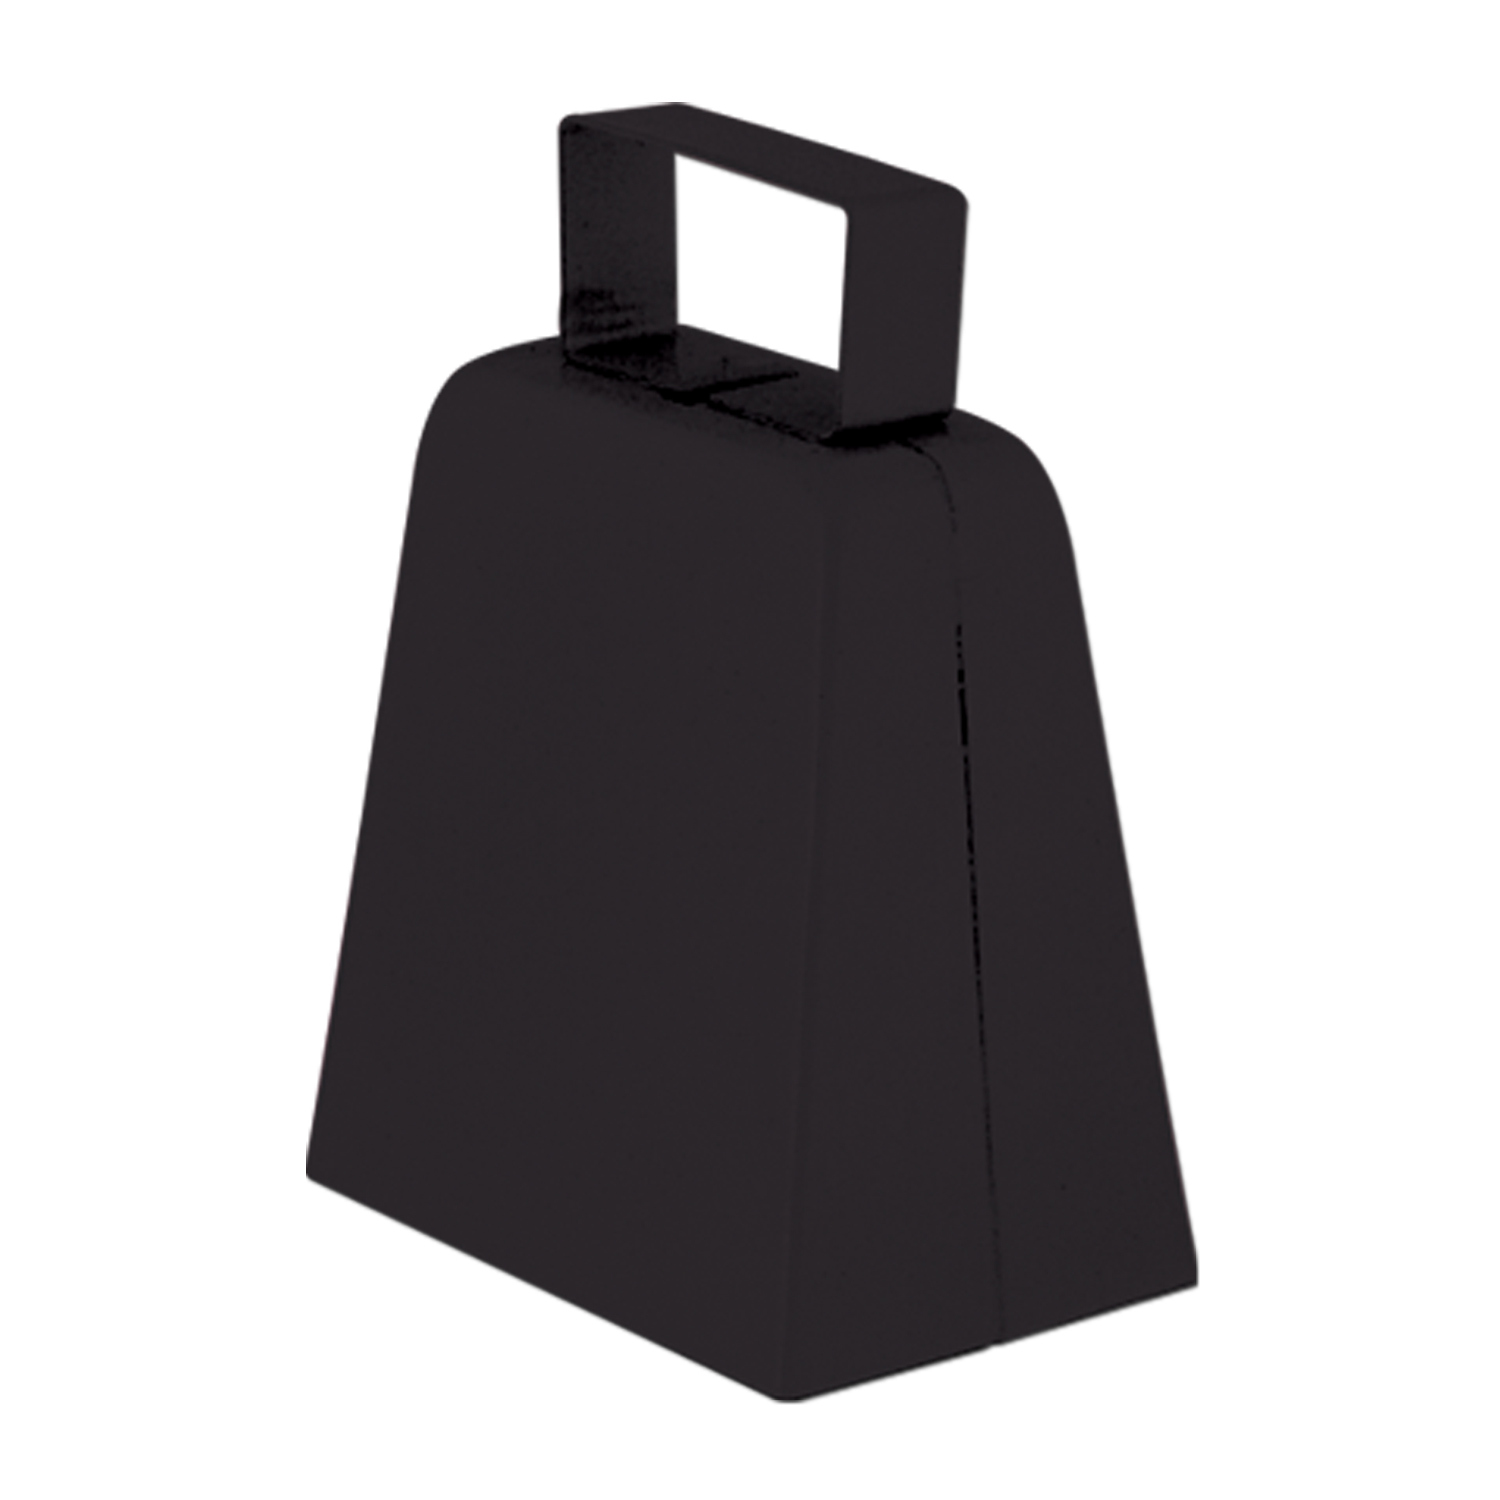 Cowbells (Pack of 12) Cowbells, noisemaker, sports, new years eve, wholesale, inexpensive, bulk